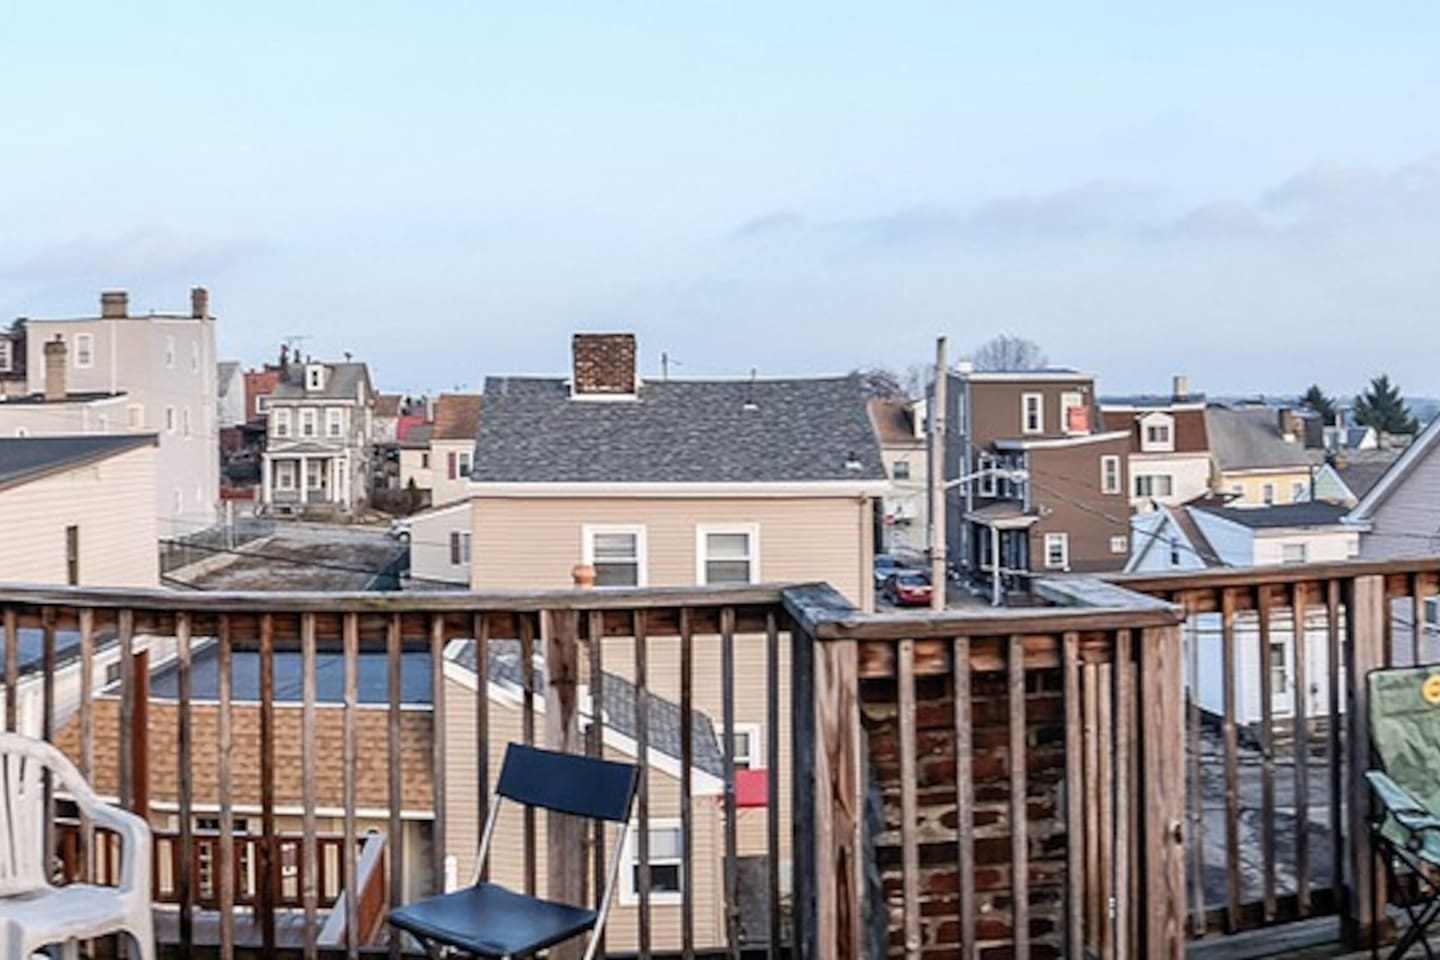 Panorama of view from the rooftop